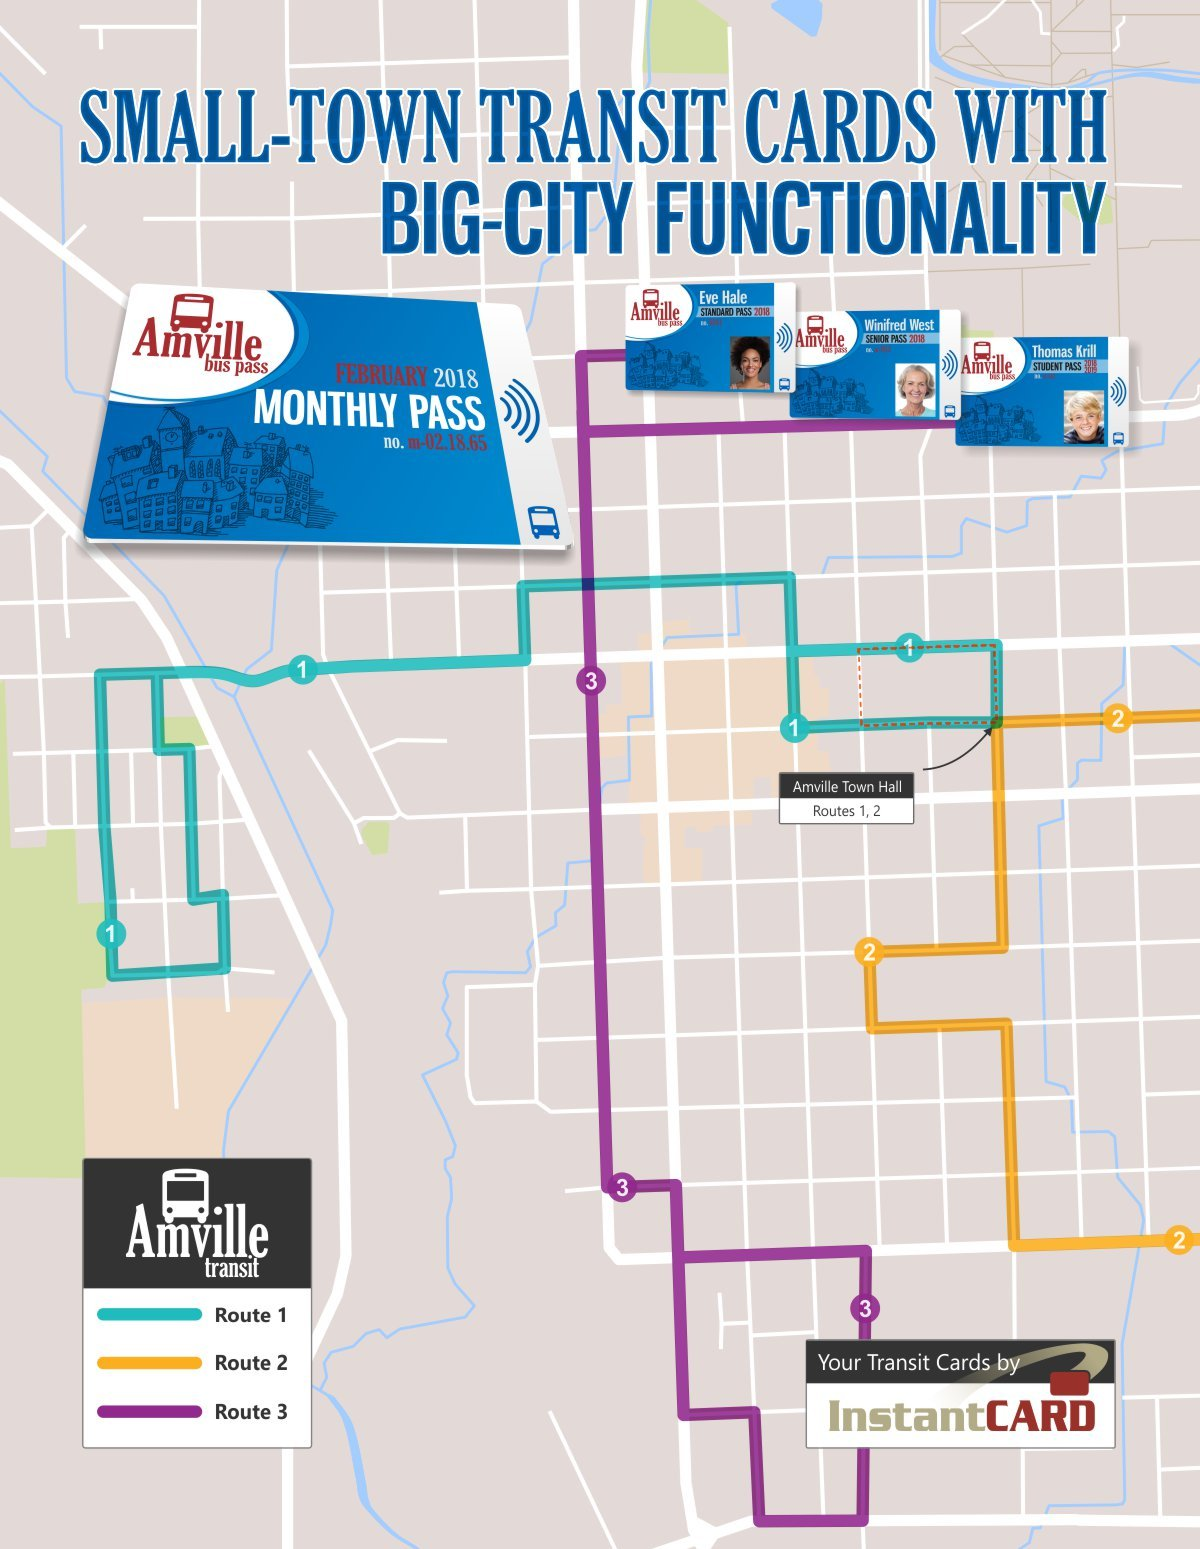 Small-Town Transit Cards with Big-City Functionality